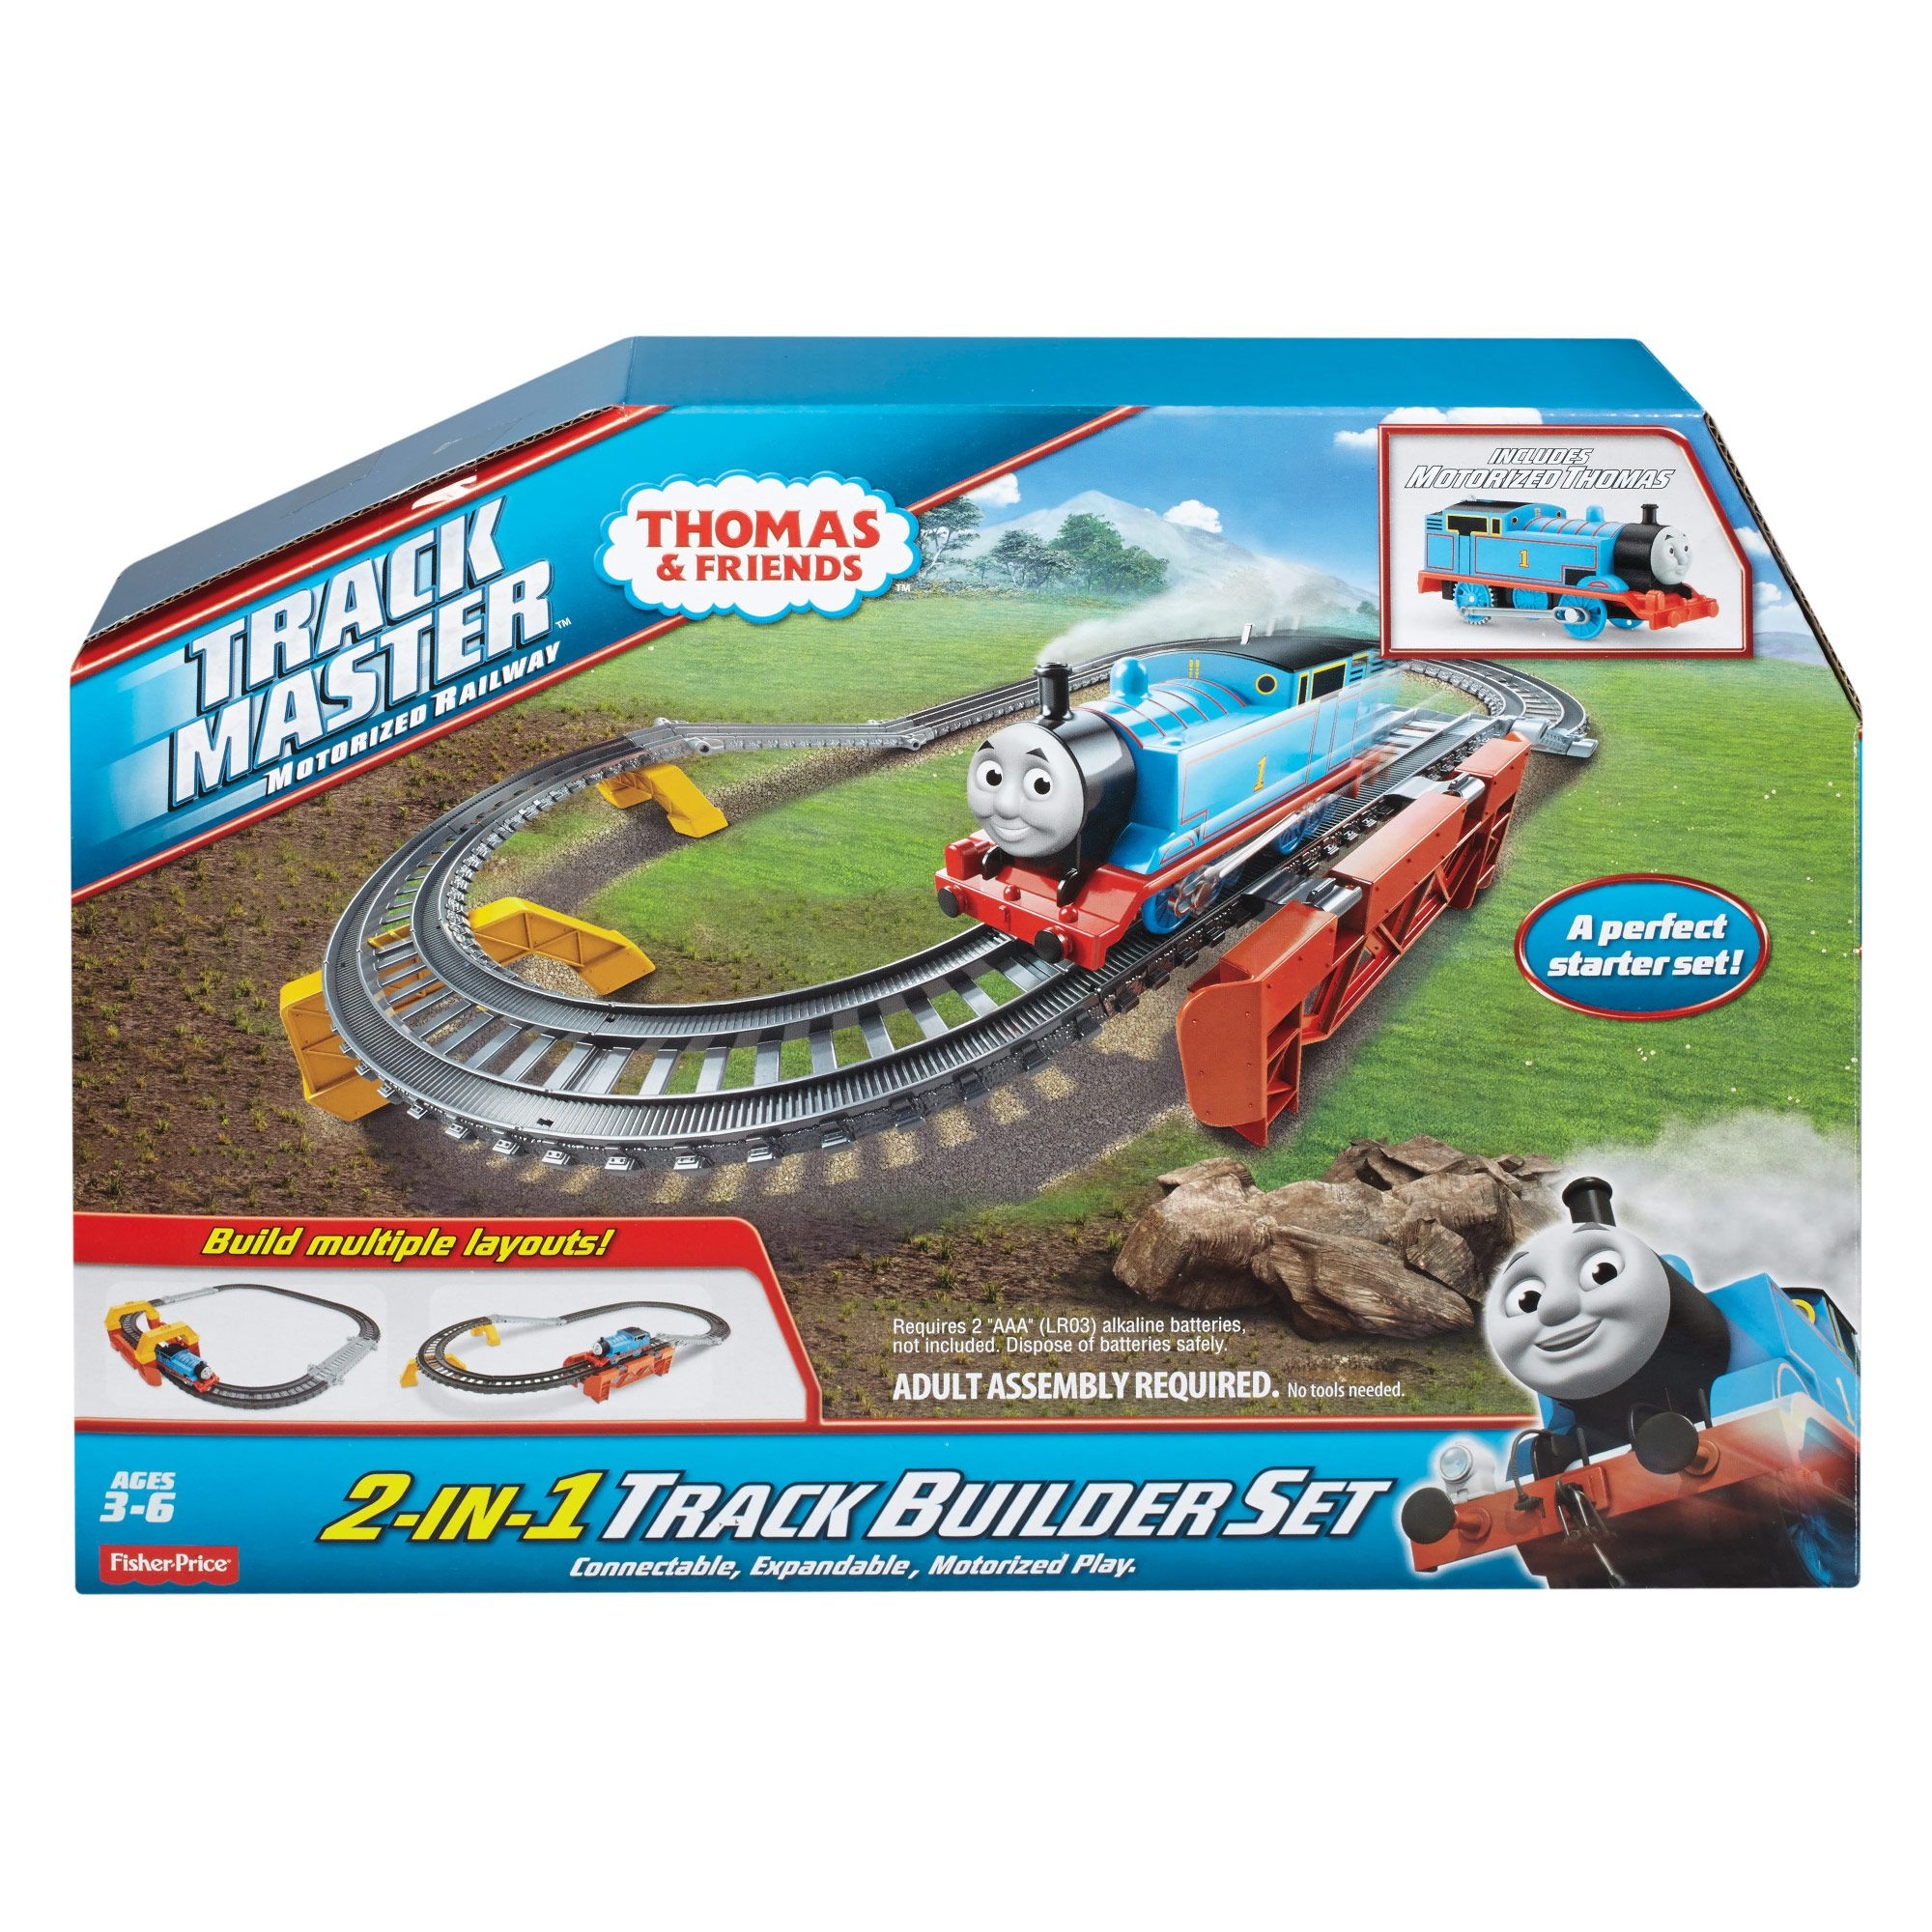 Thomas & Friends TrackMaster 2in1 Track Builder Set